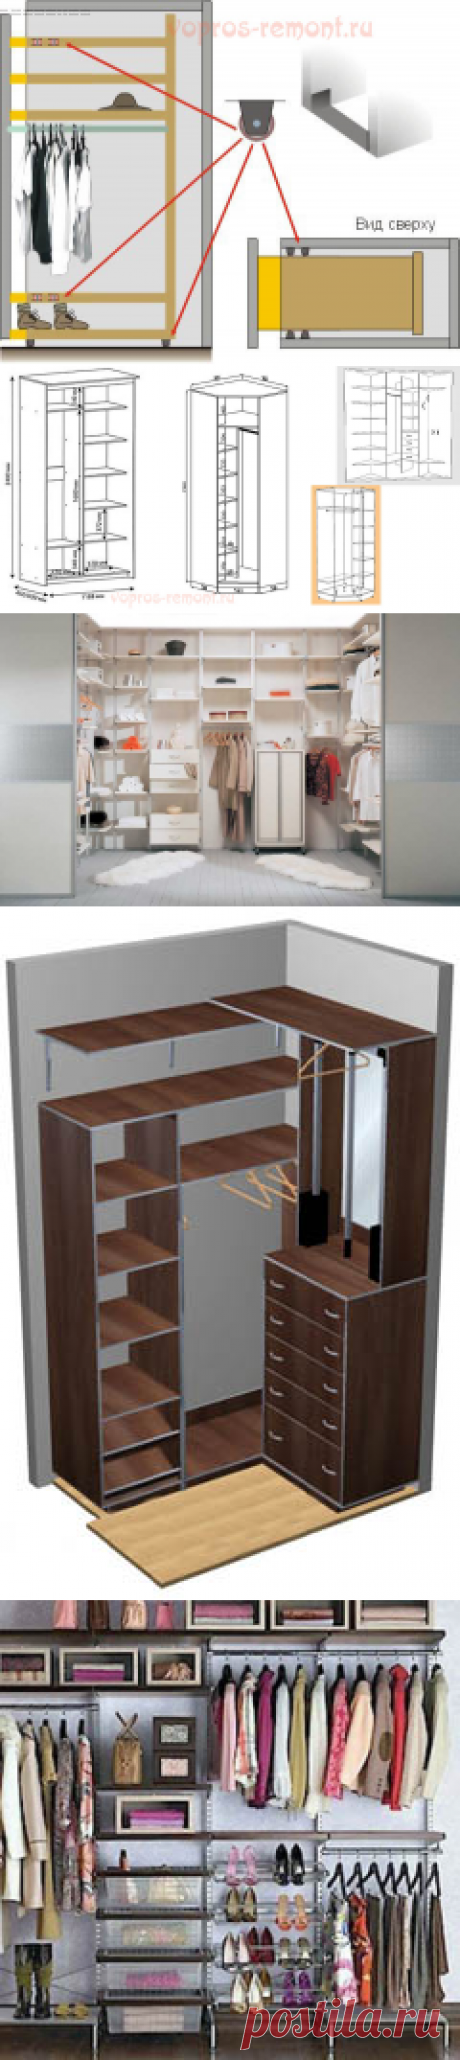 Wardrobe the hands: how to make the room or a case - projects, ideas, the equipment